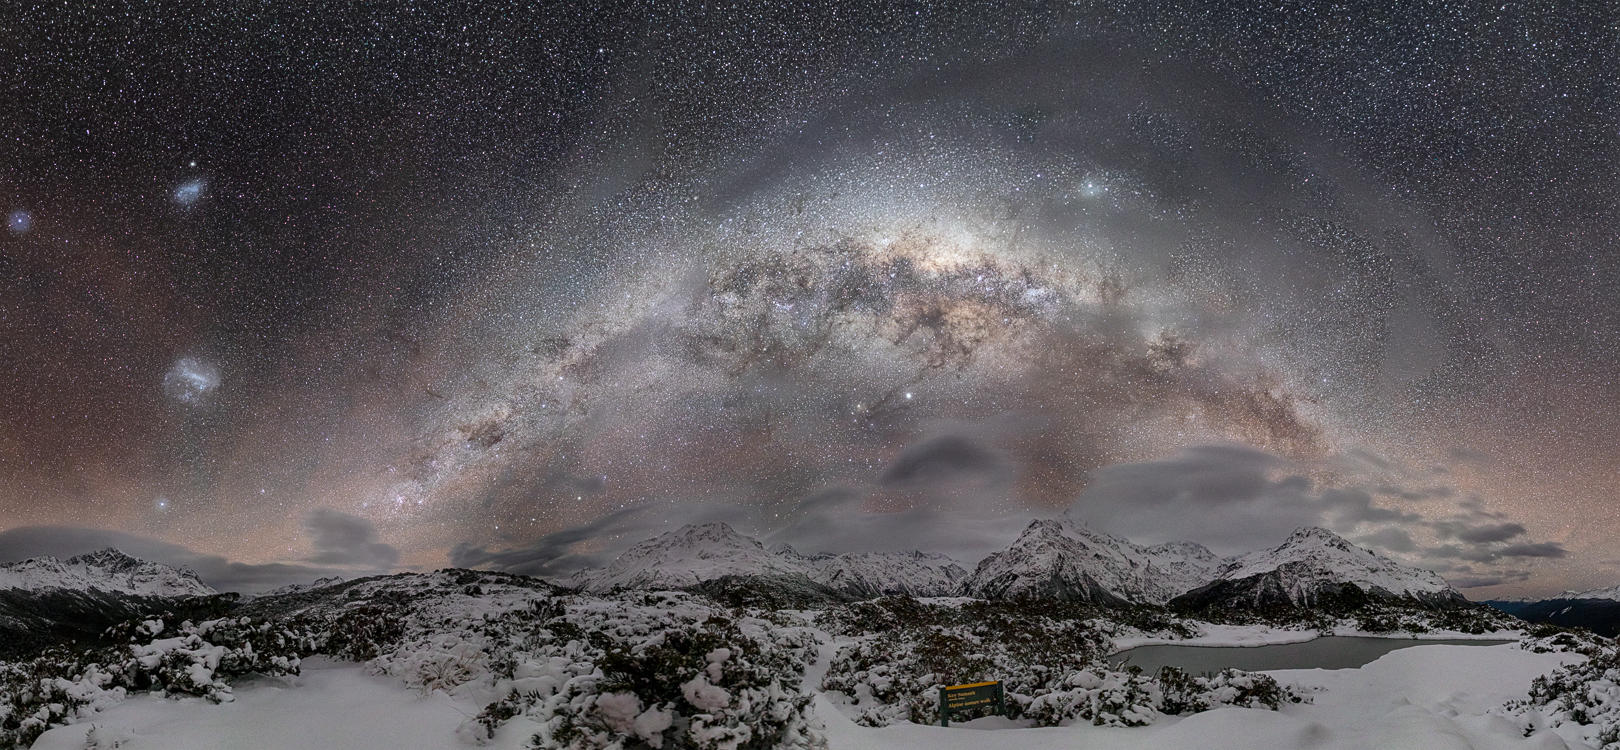 Key Summit  The Milky Way arch setting over Fiordland's majestic snow-capped mountains  This image is available as an A2 signed, limited edition (20) fine art print - Get in touch for more details  Print 1/20: $448.50 NZD